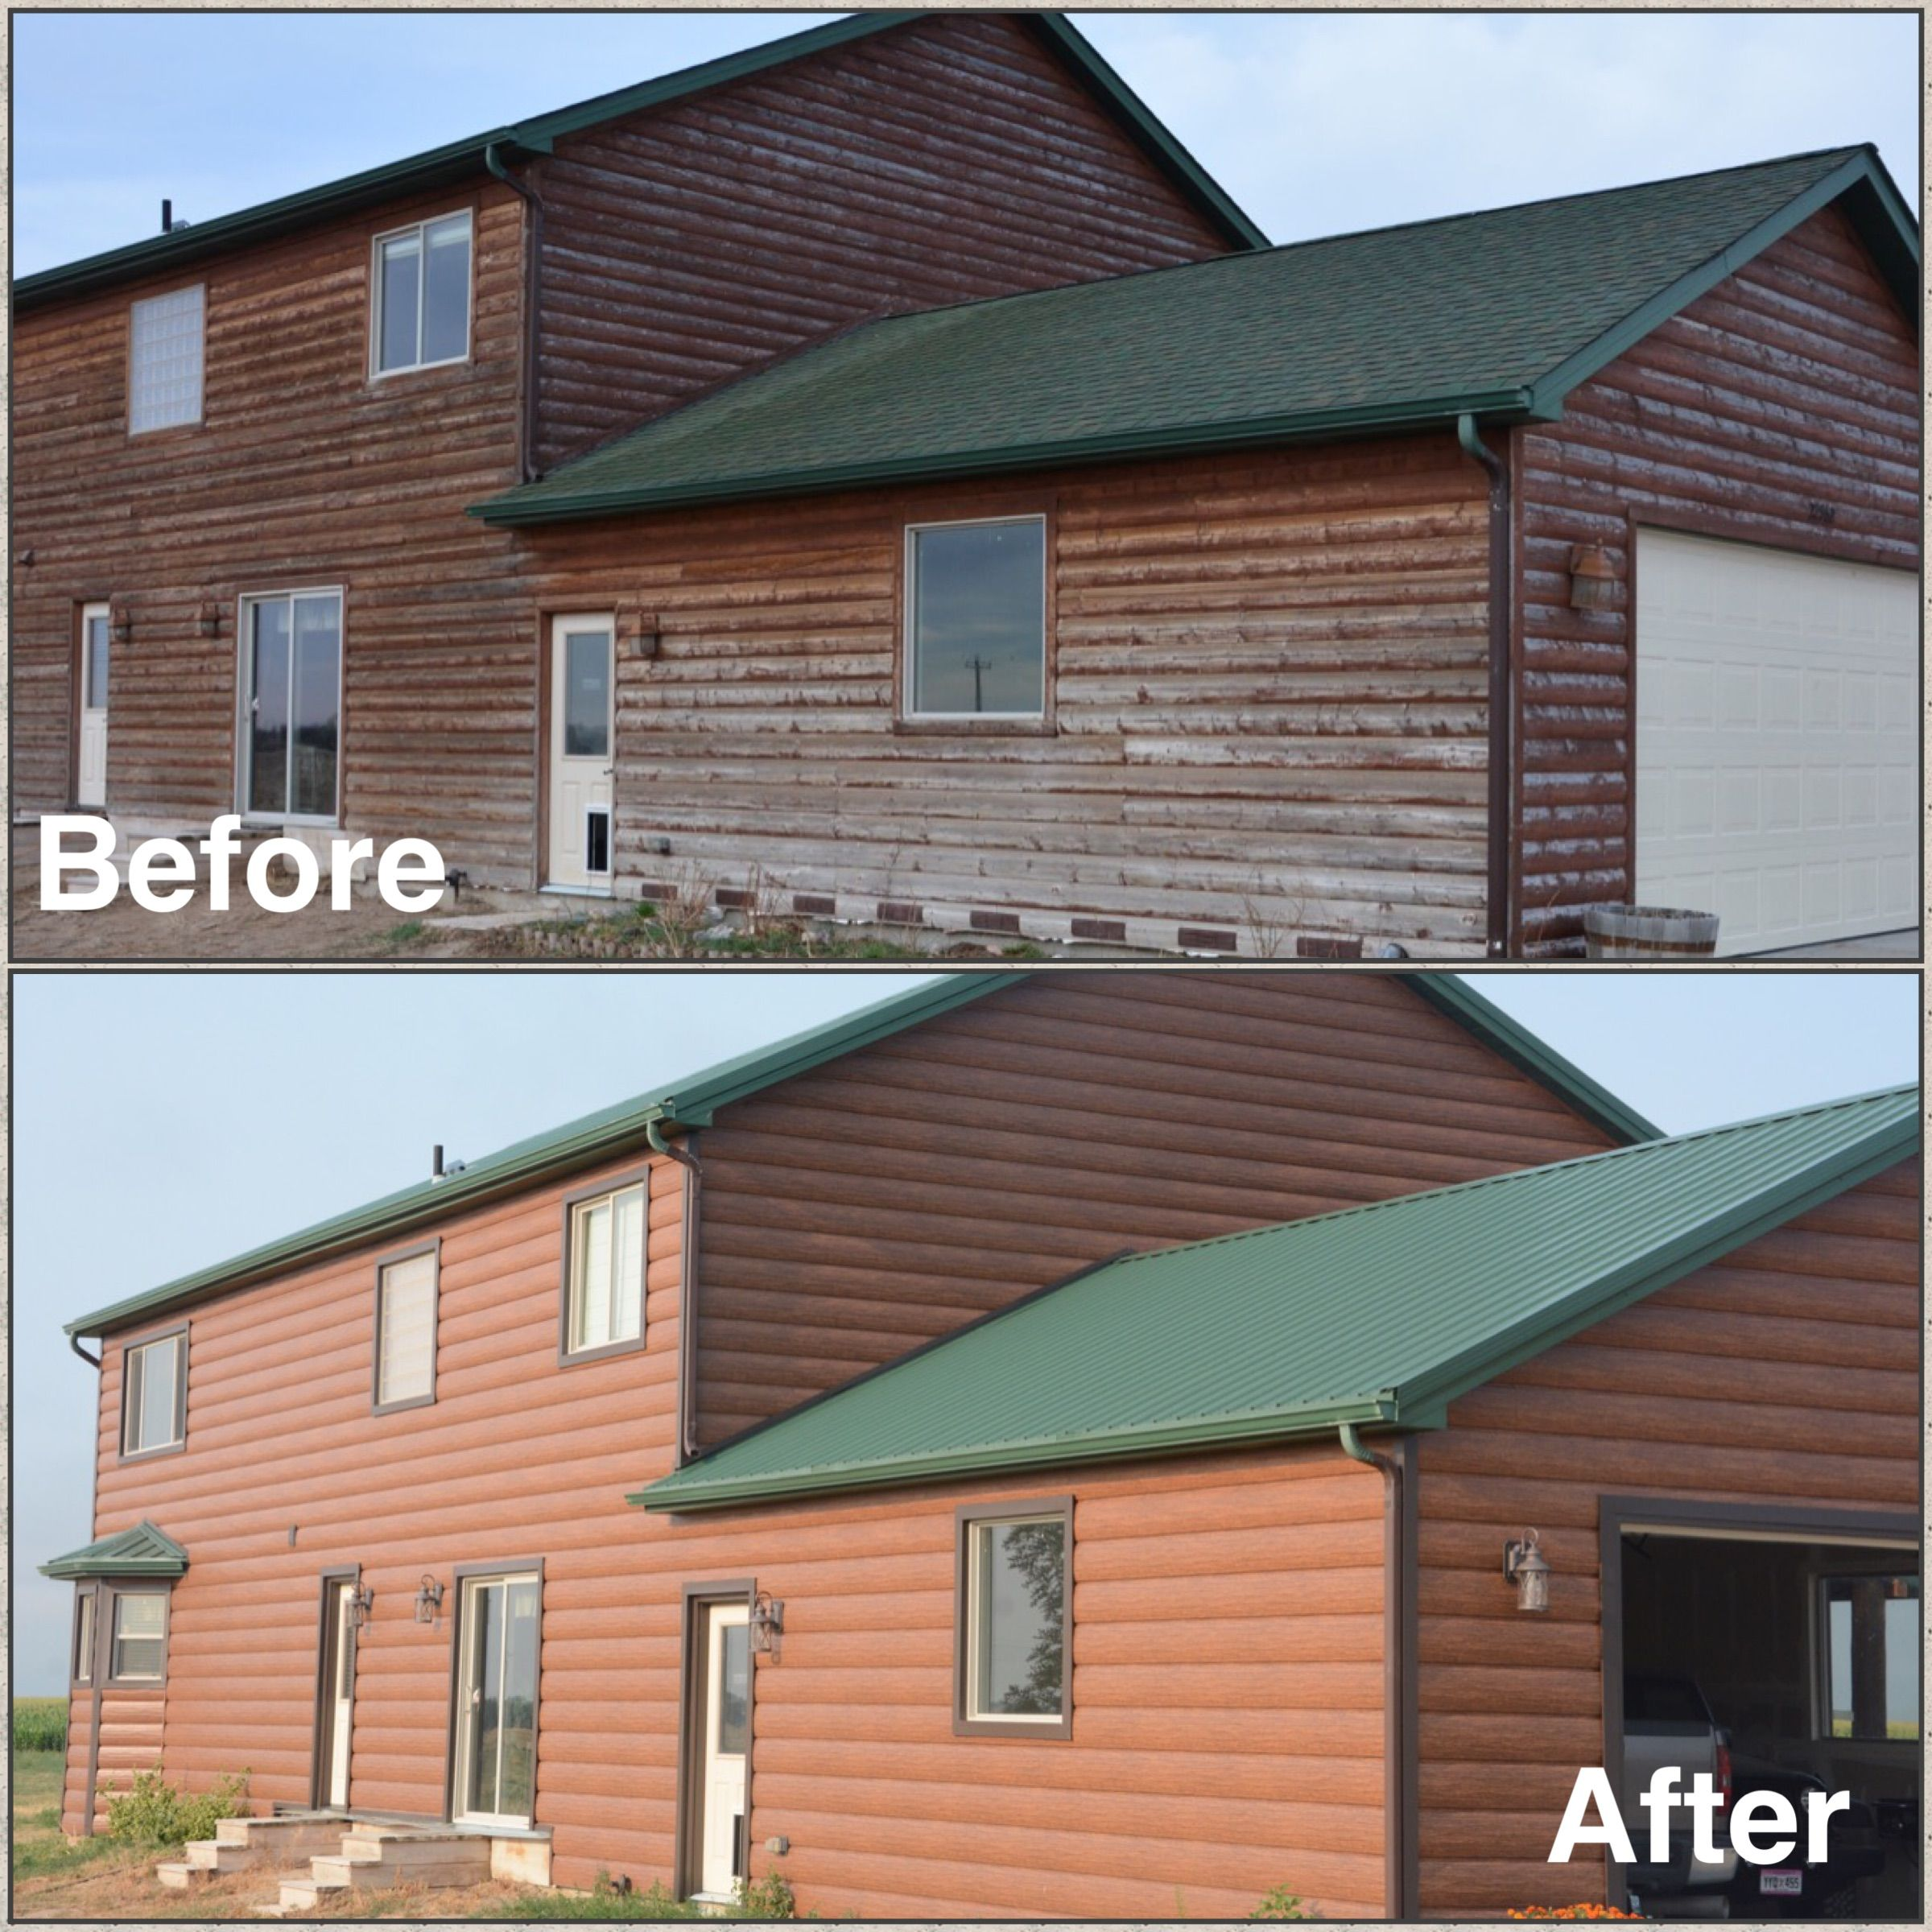 Red Cedar Home In Colorado Went From Real Wood Logs To Maintenance Free Steel Log Siding Cedar Homes Log Siding Steel Siding